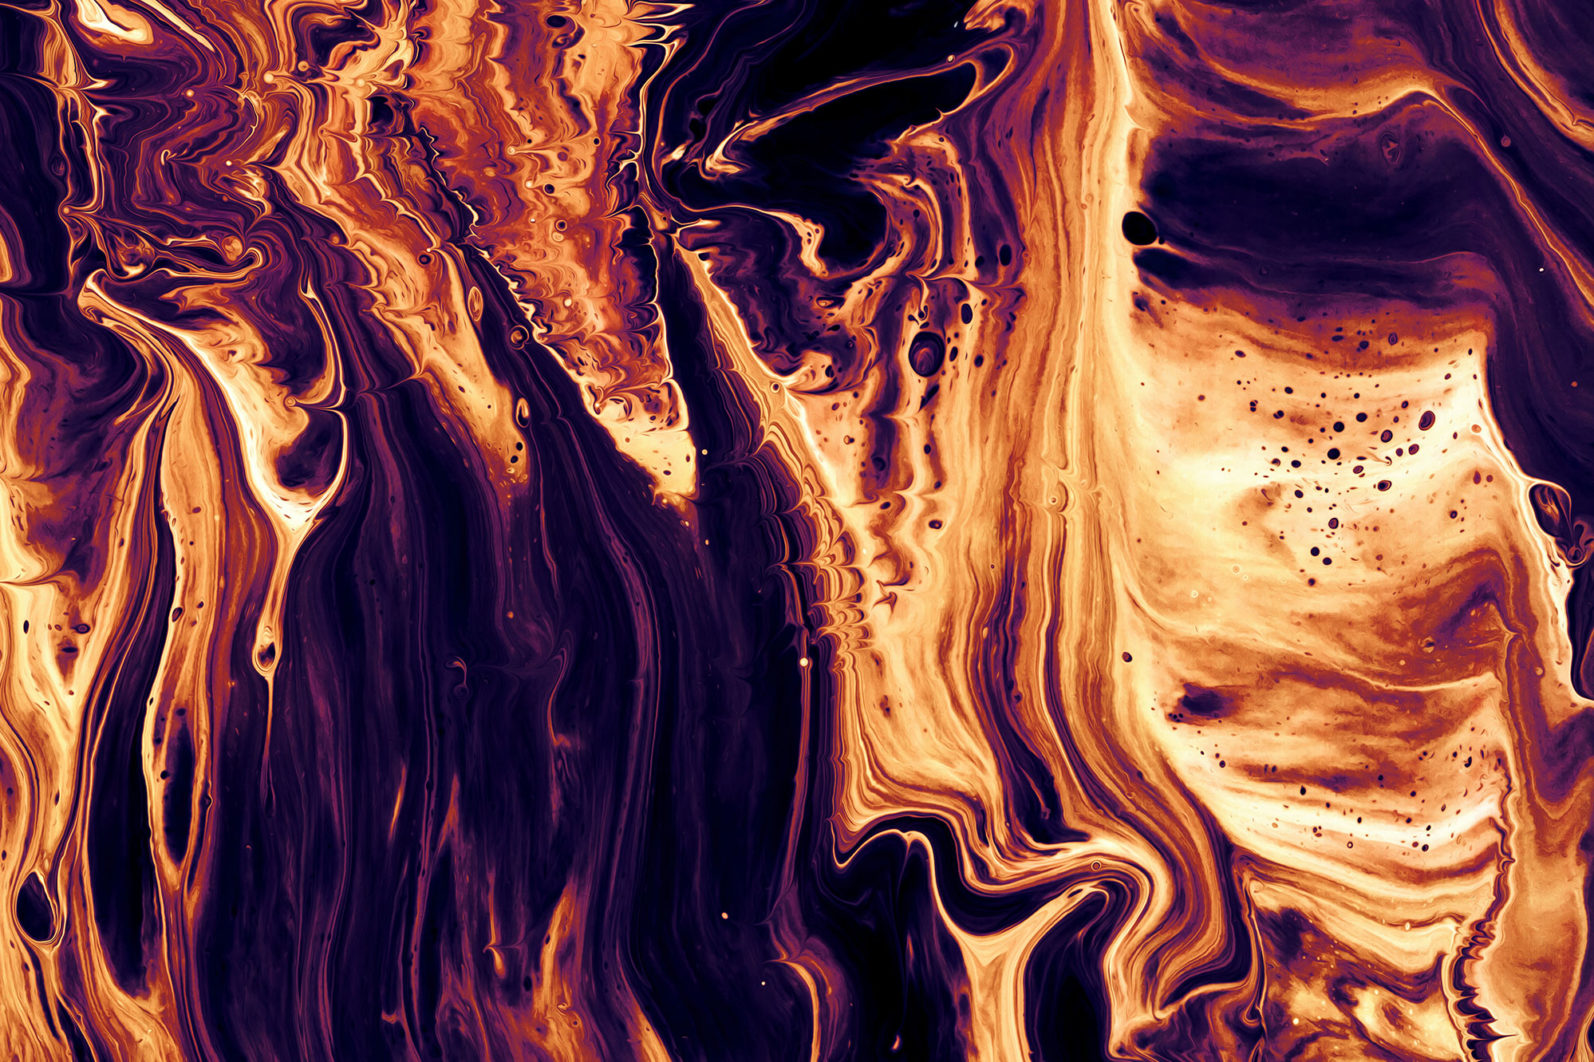 Enigma: 15 Abstract Paint Textures - 09 Enigma Product imagery indiv 05 -